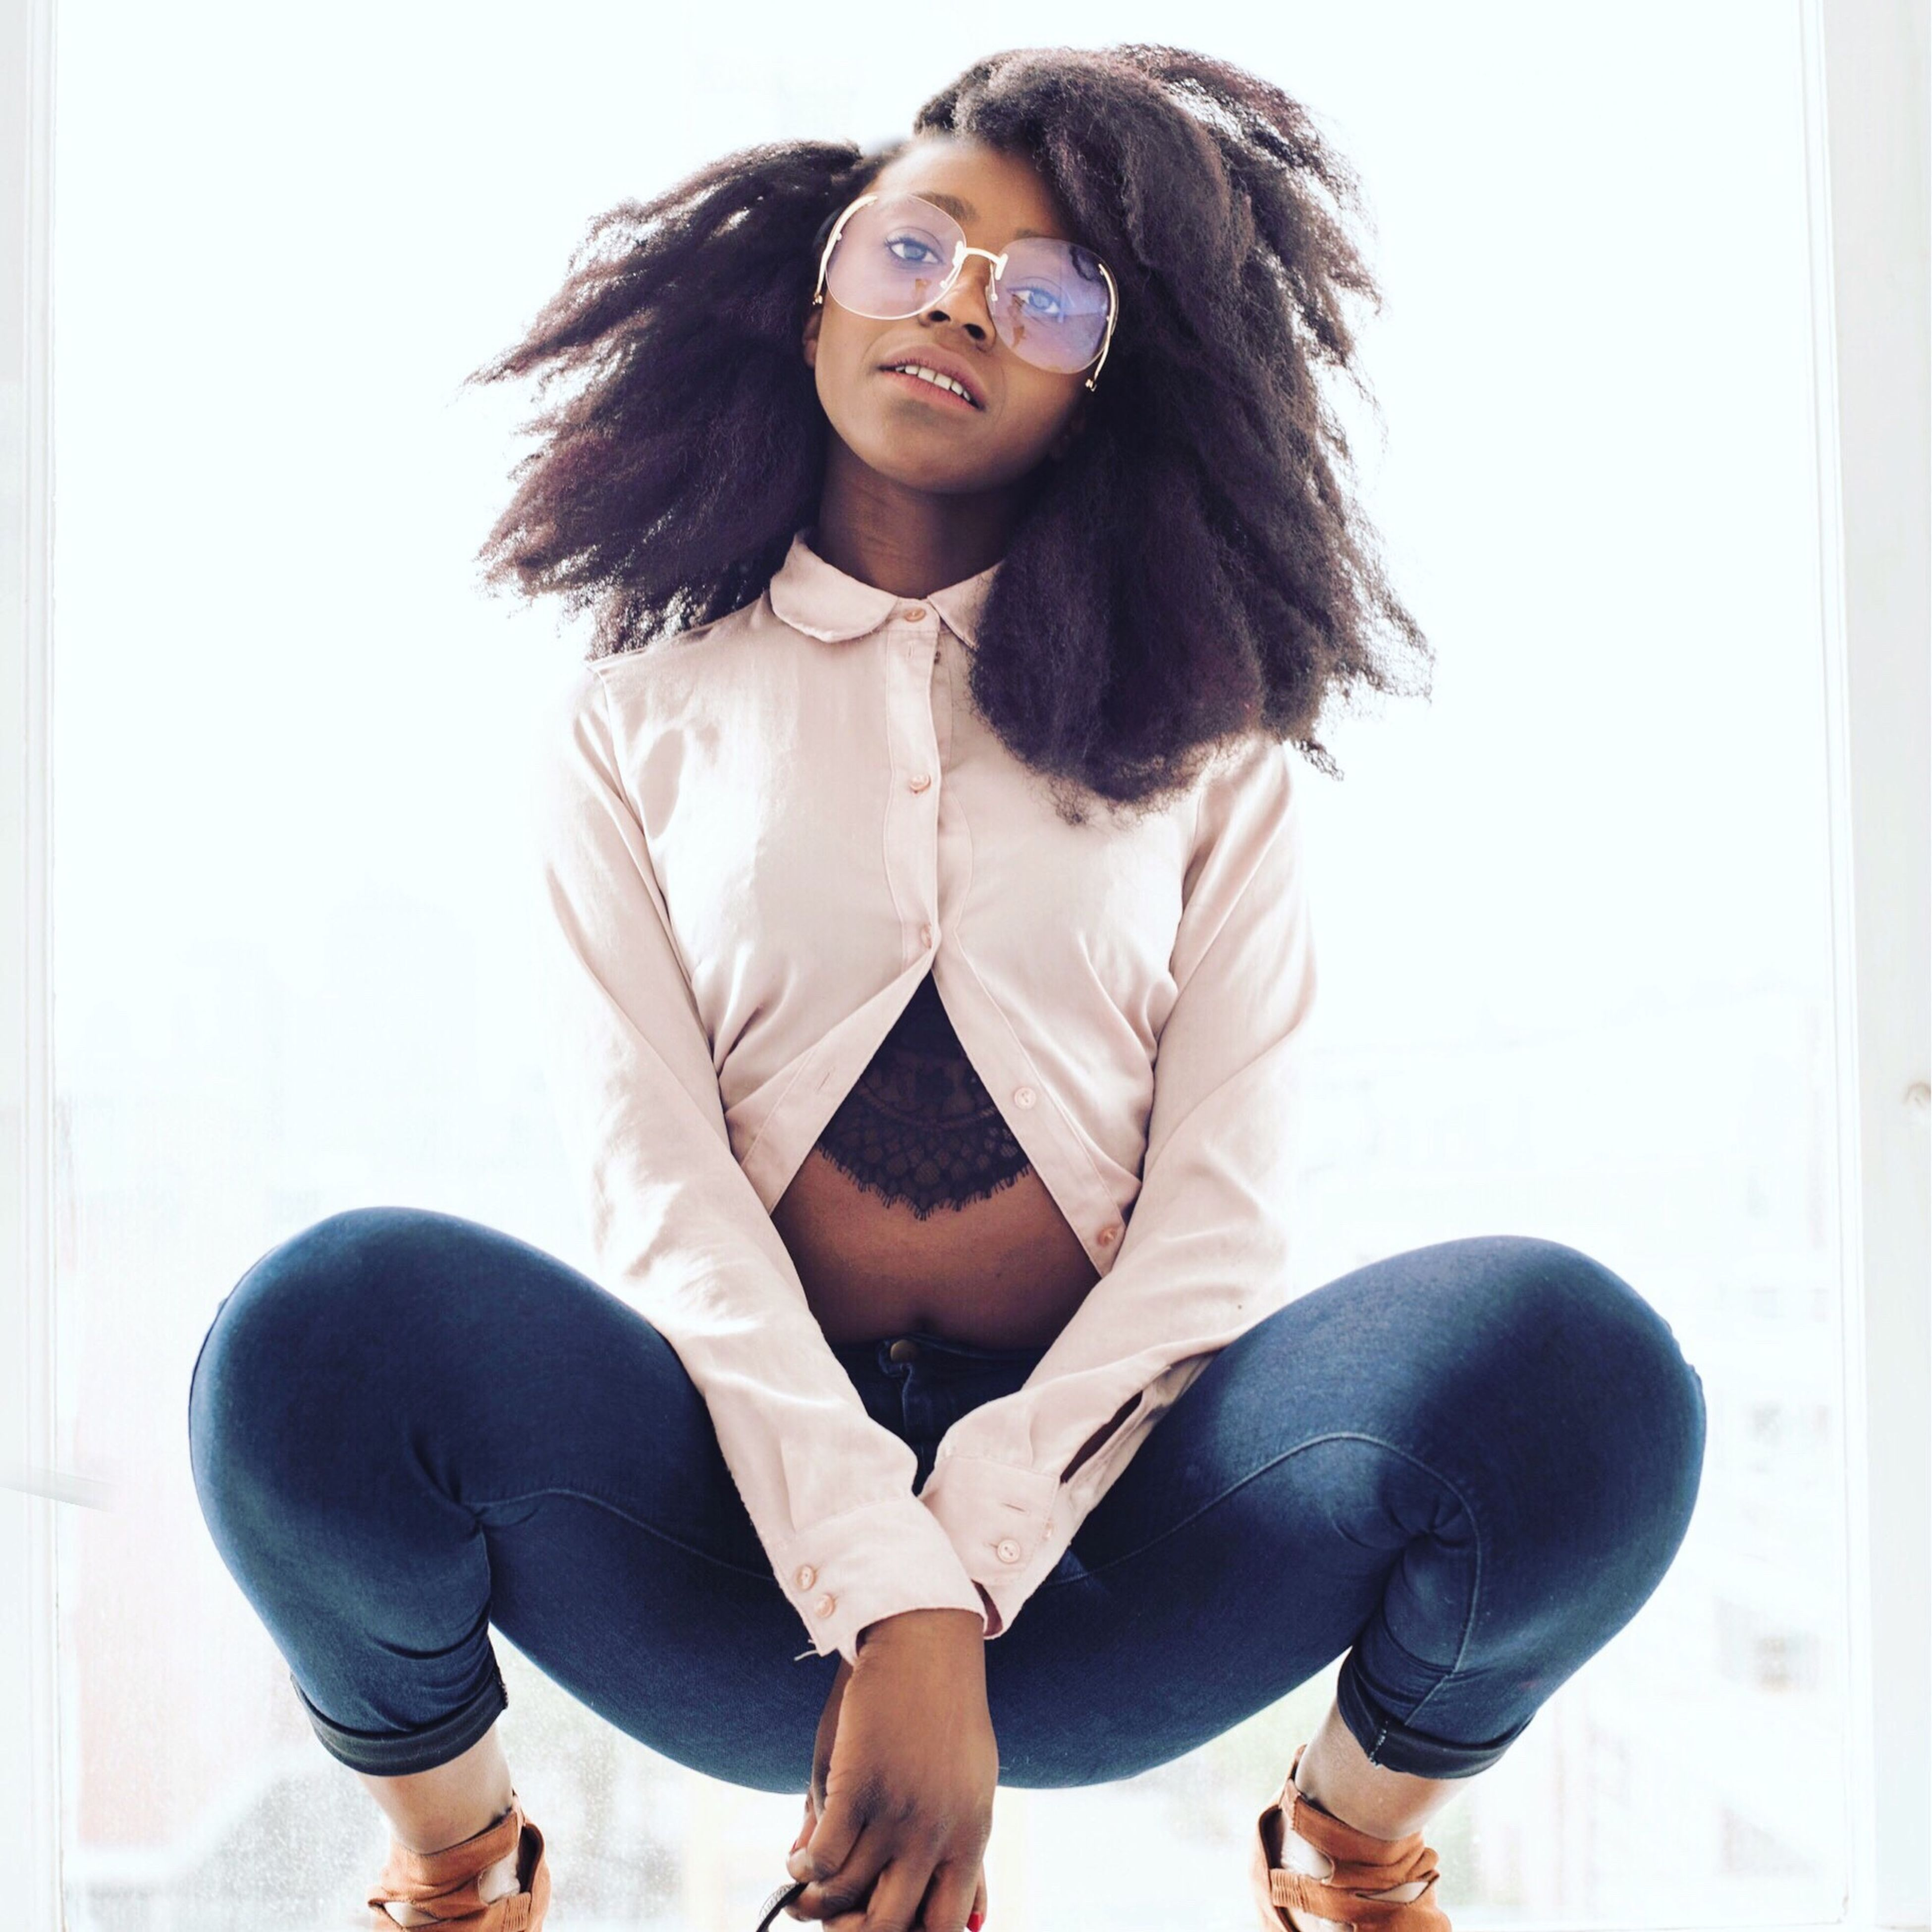 young adult, looking at camera, portrait, black hair, one person, casual clothing, indoors, young women, white background, beautiful woman, eyeglasses, sitting, studio shot, real people, confidence, full length, lifestyles, curly hair, happiness, one young woman only, day, adult, people, adults only